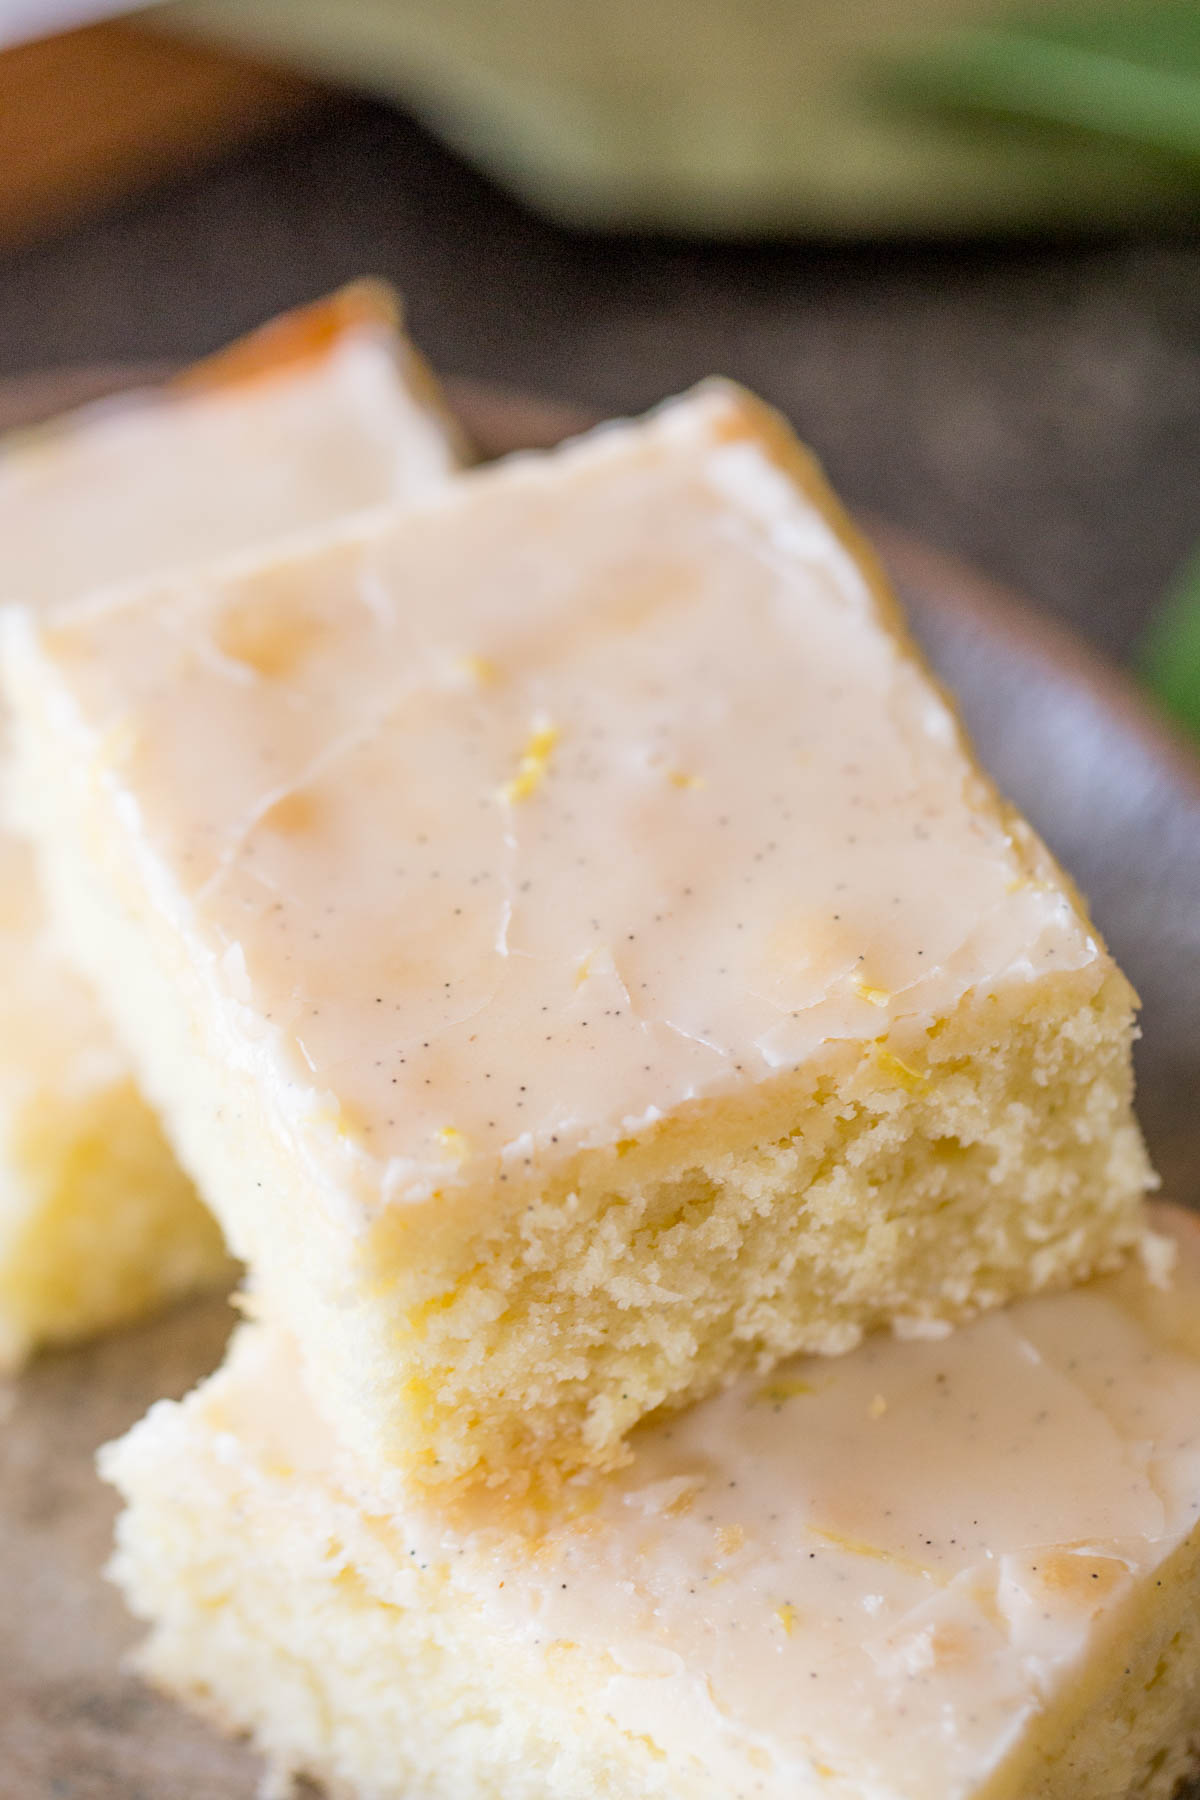 Three Vanilla Bean Lemon Bars on a plate.